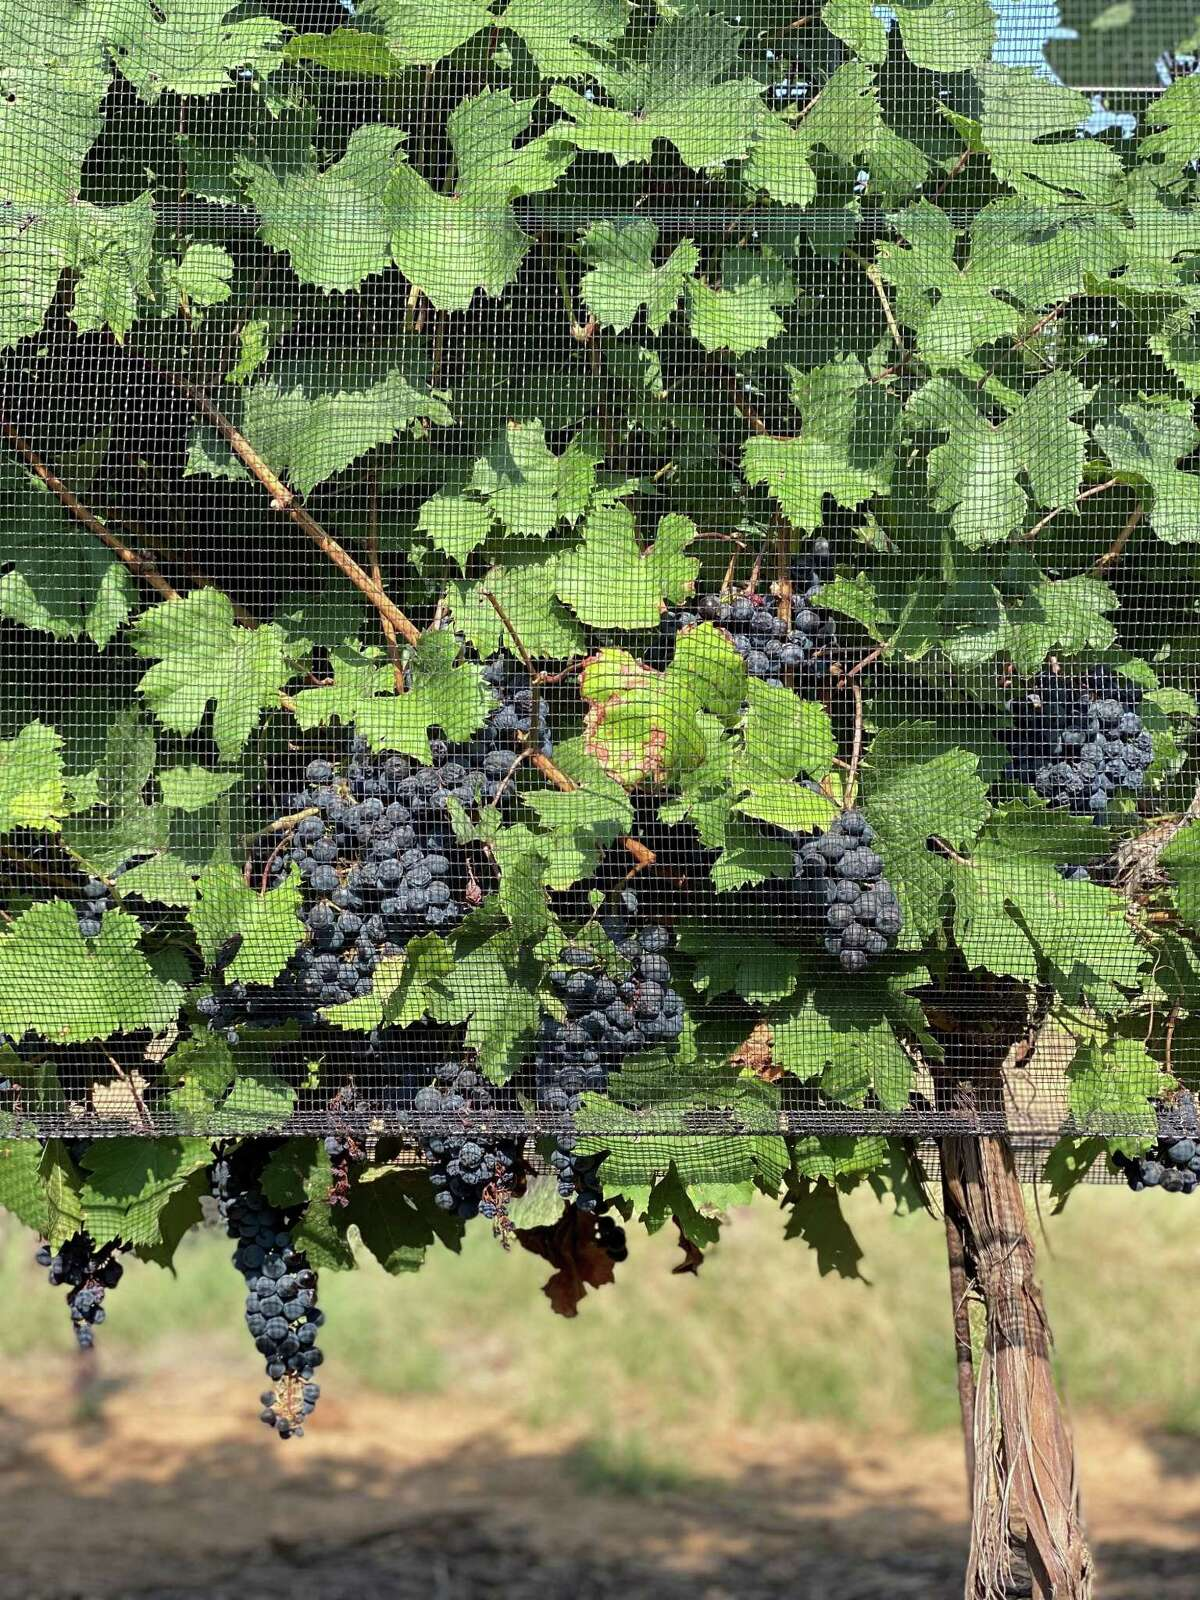 Dolcetto grapes maturing under netting at One Way Vineyards in Texas. Birds are a huge problem in vineyards since the grapes are so sweet and attract birds.